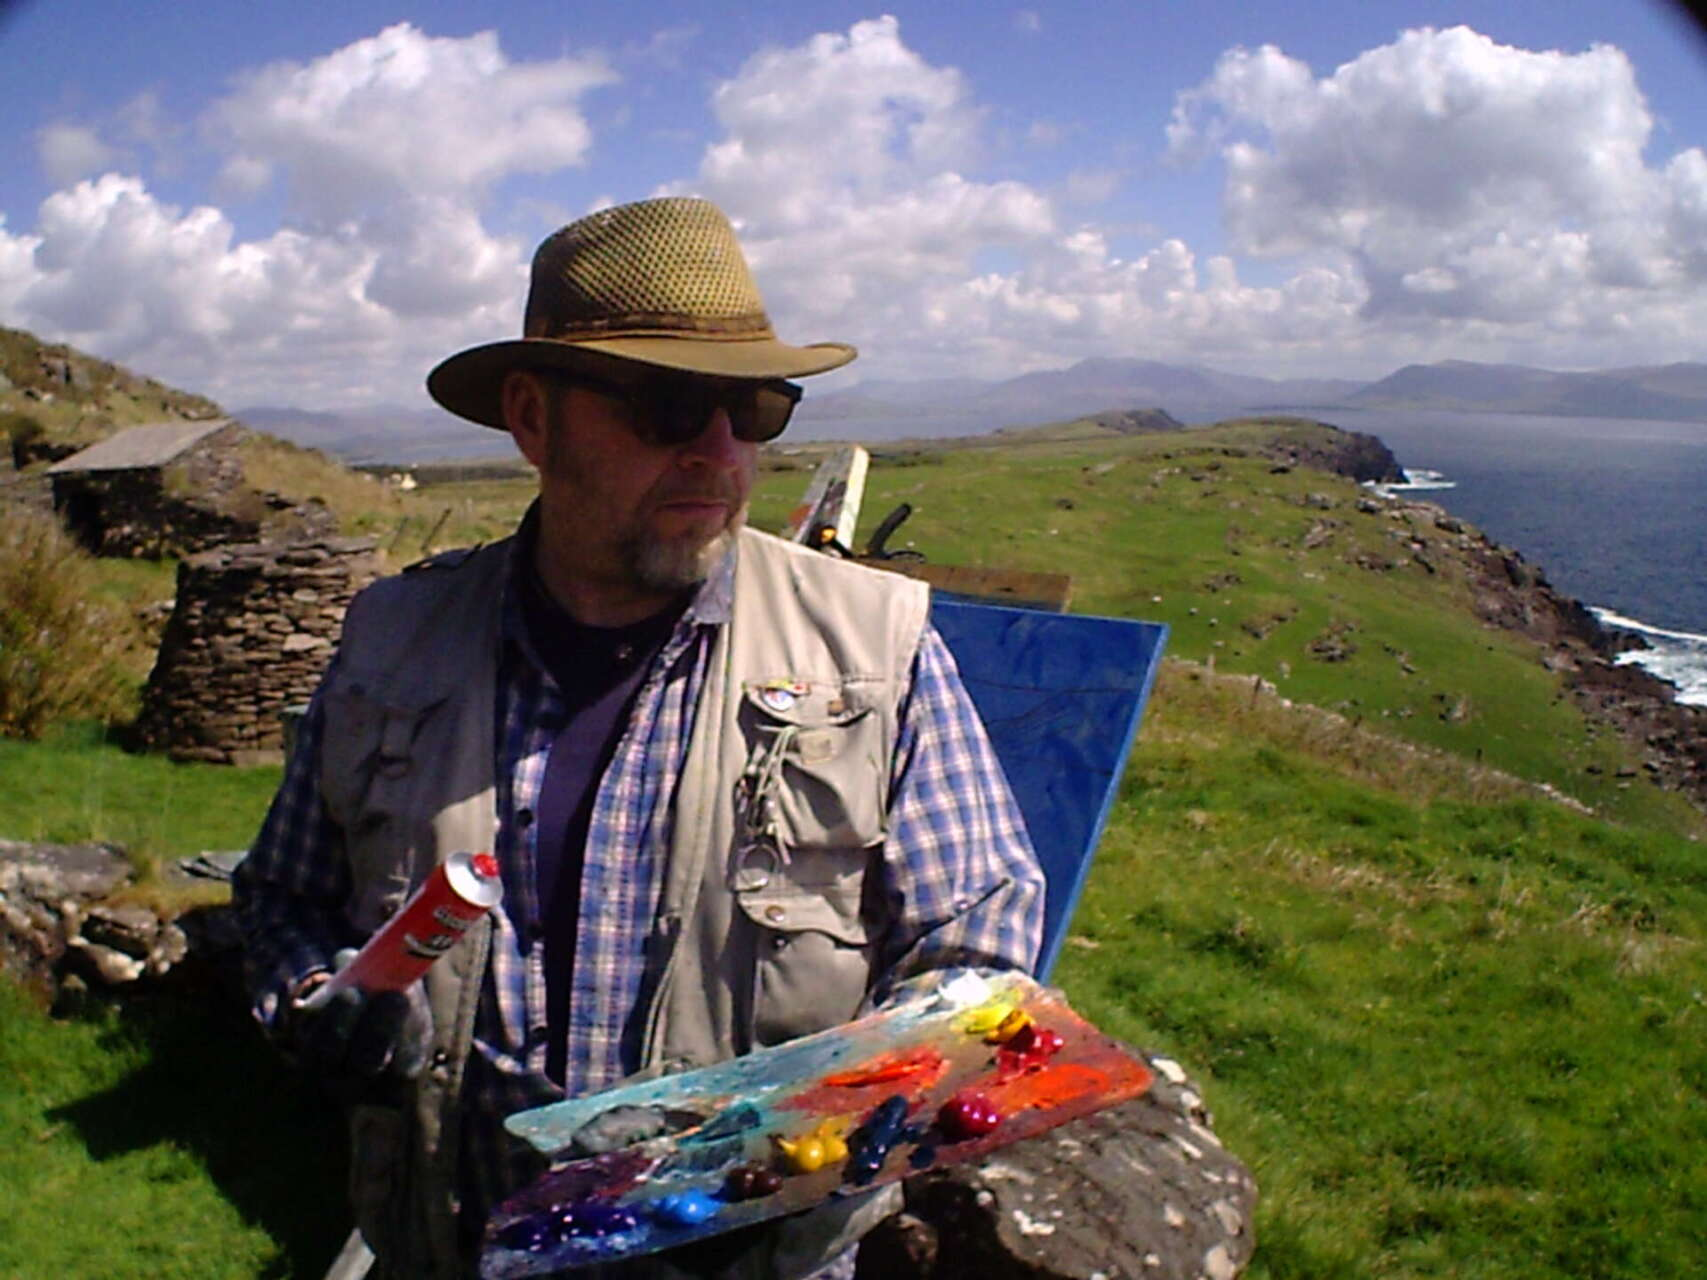 artist rod coyne squeezes extra red paint onto his palette, while working on a clifftop above ballinskelligs bay